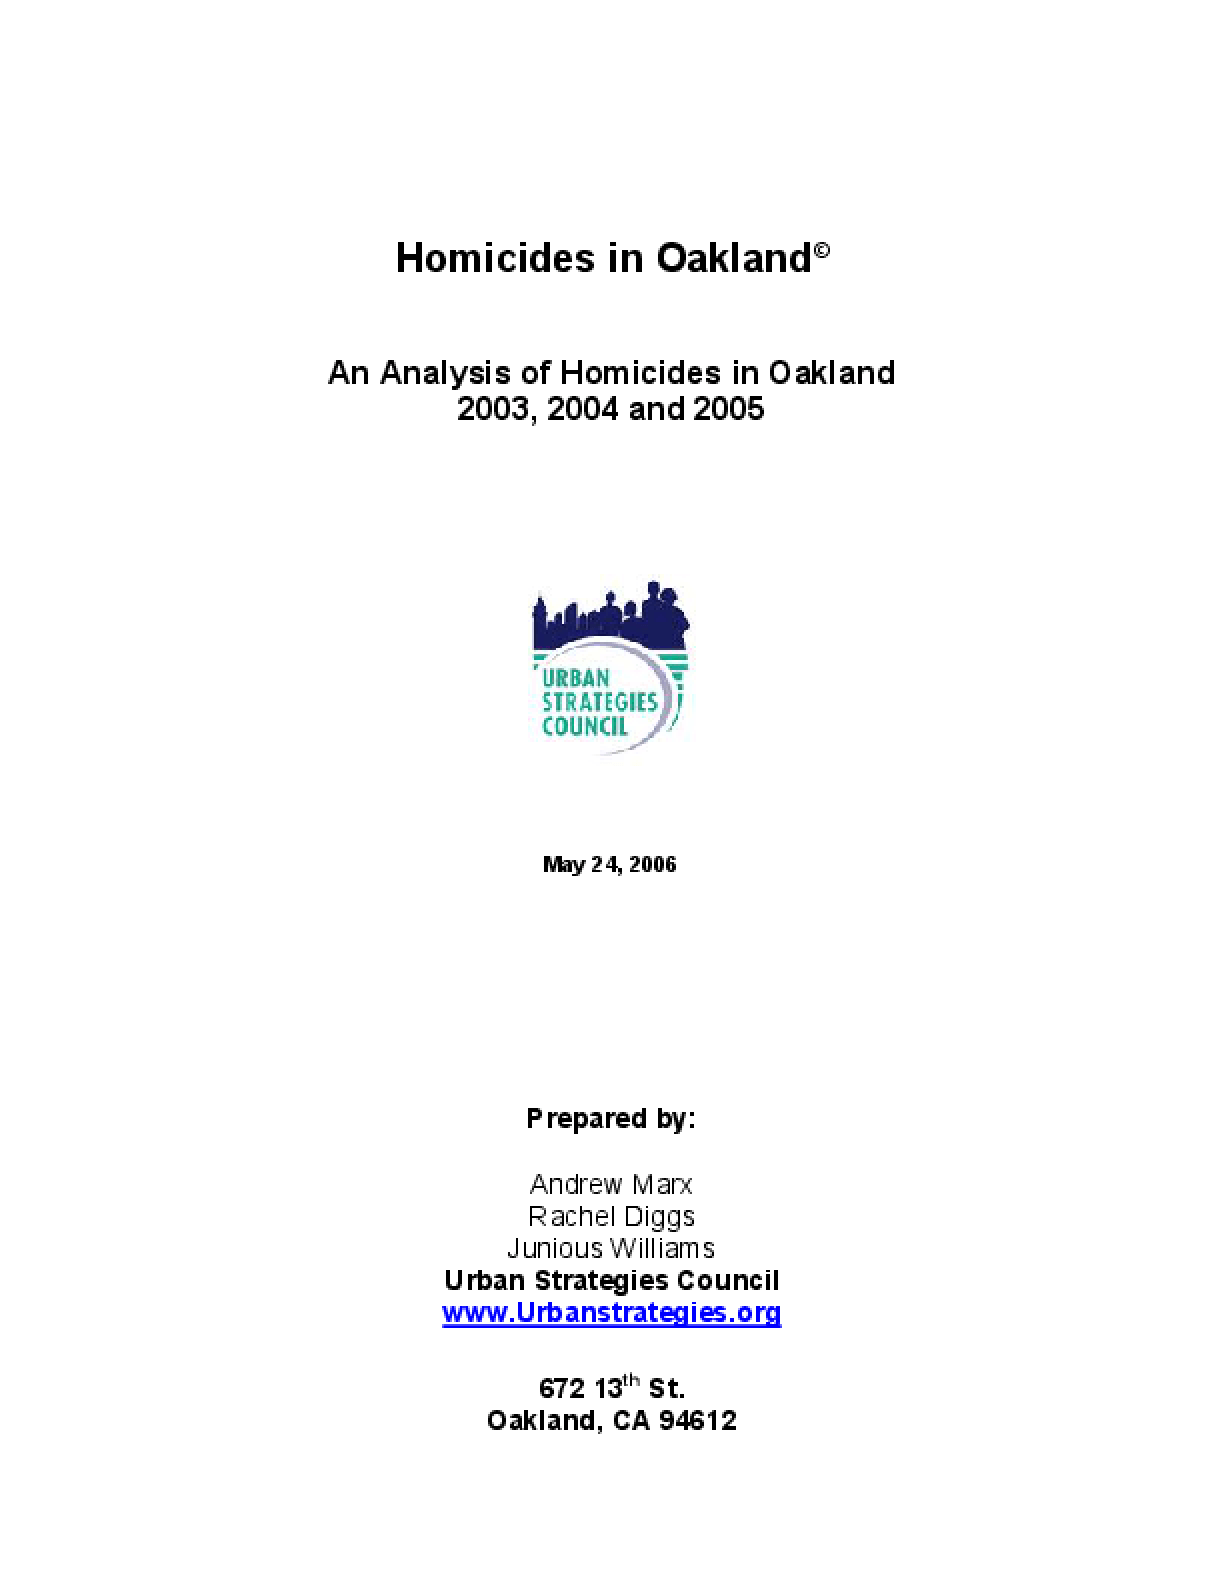 An Analysis of Homicides in Oakland 2003, 2004 and 2005